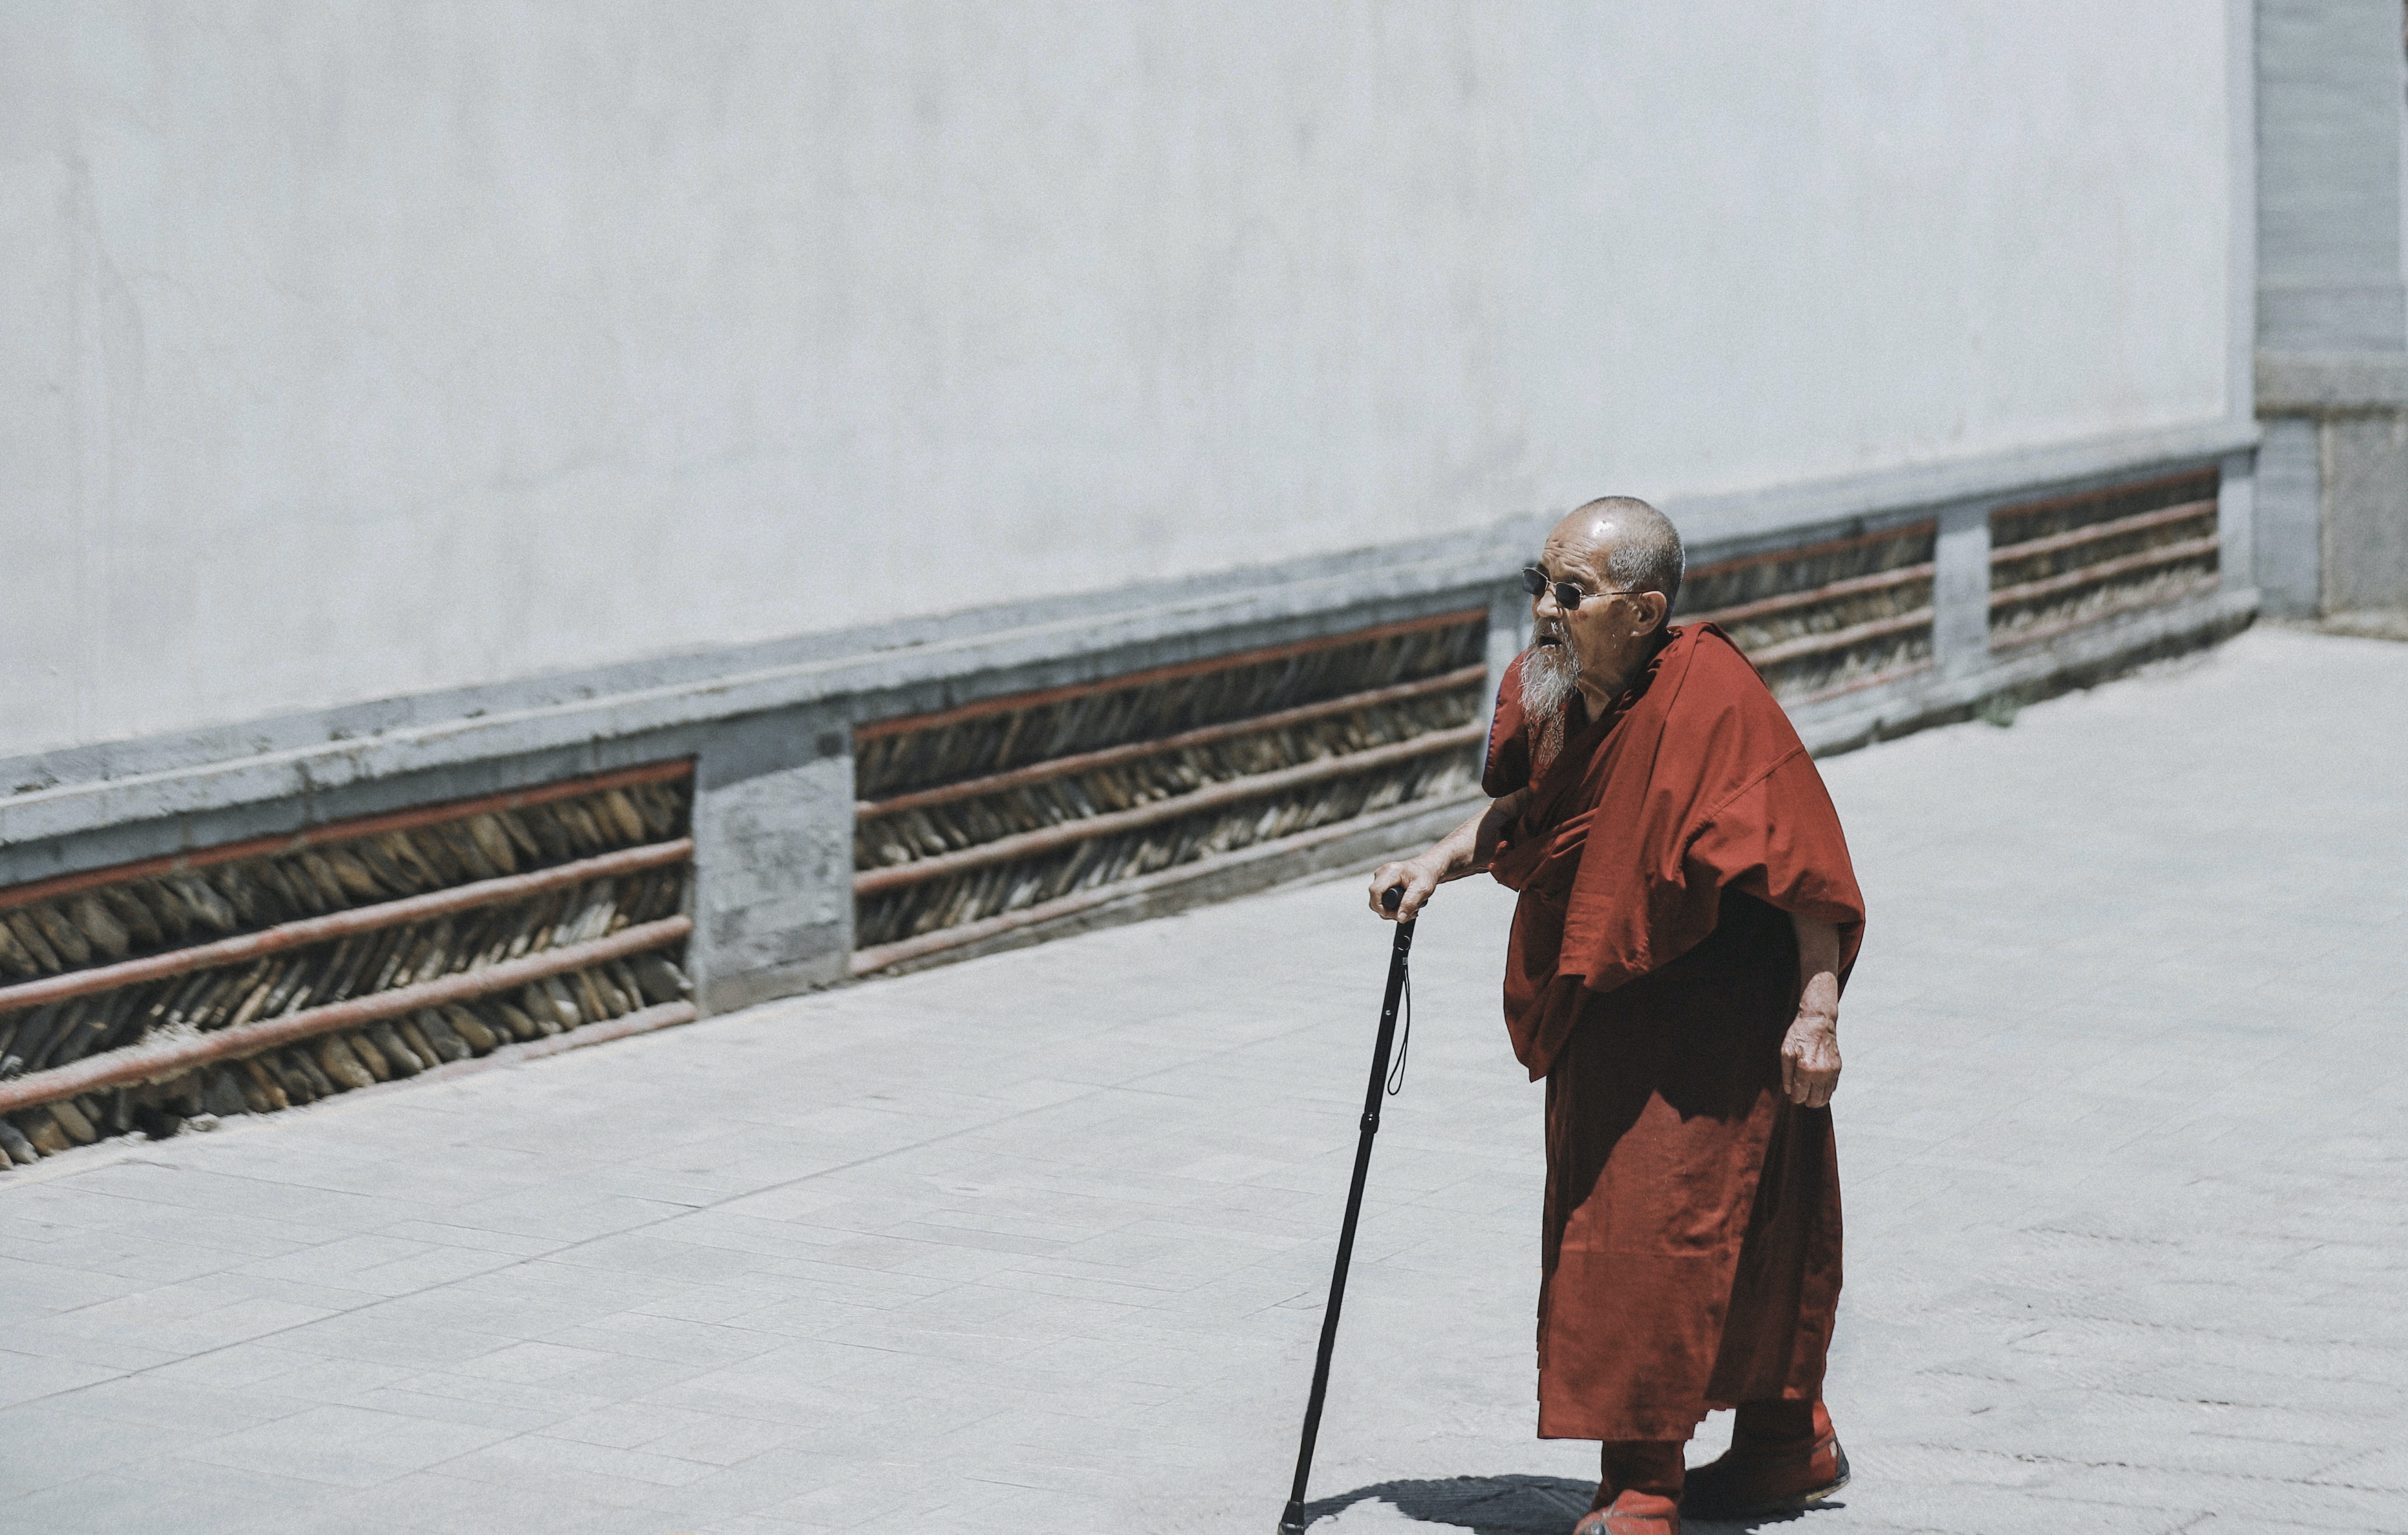 monk walking while holding cane near white wall